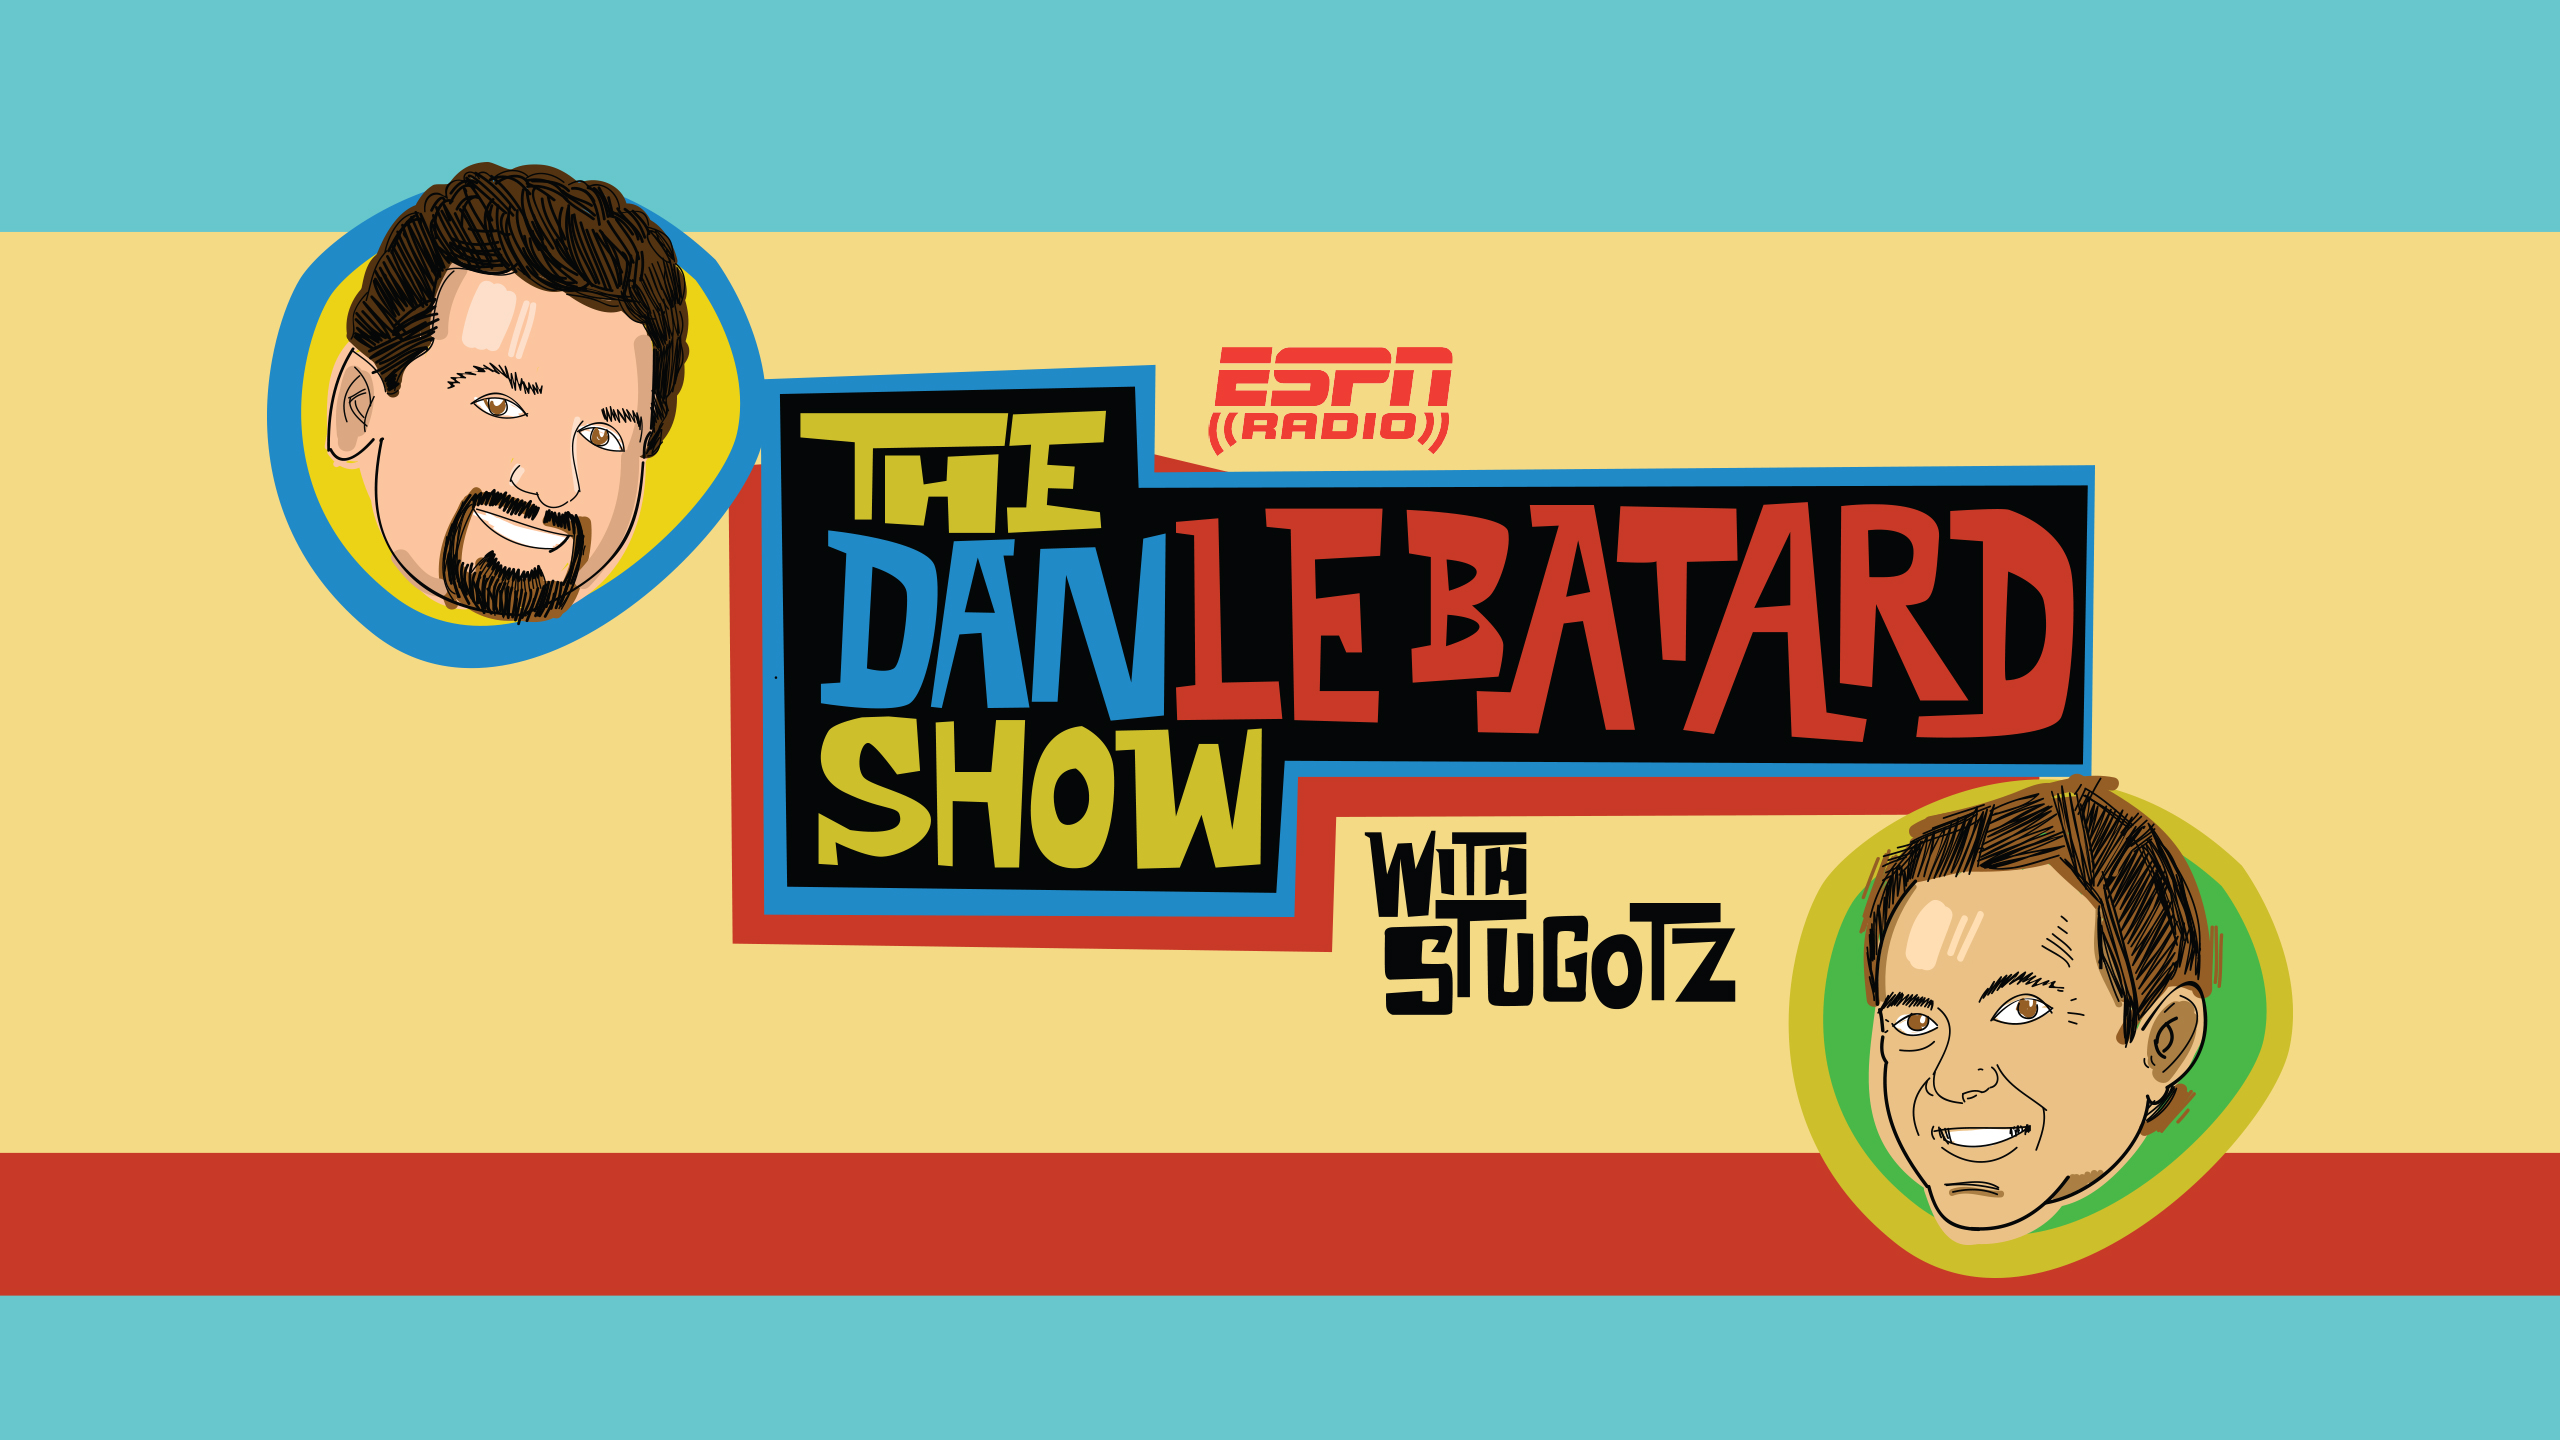 Tue, 1/22 - The Dan Le Batard Show with Stugotz Presented by Progressive